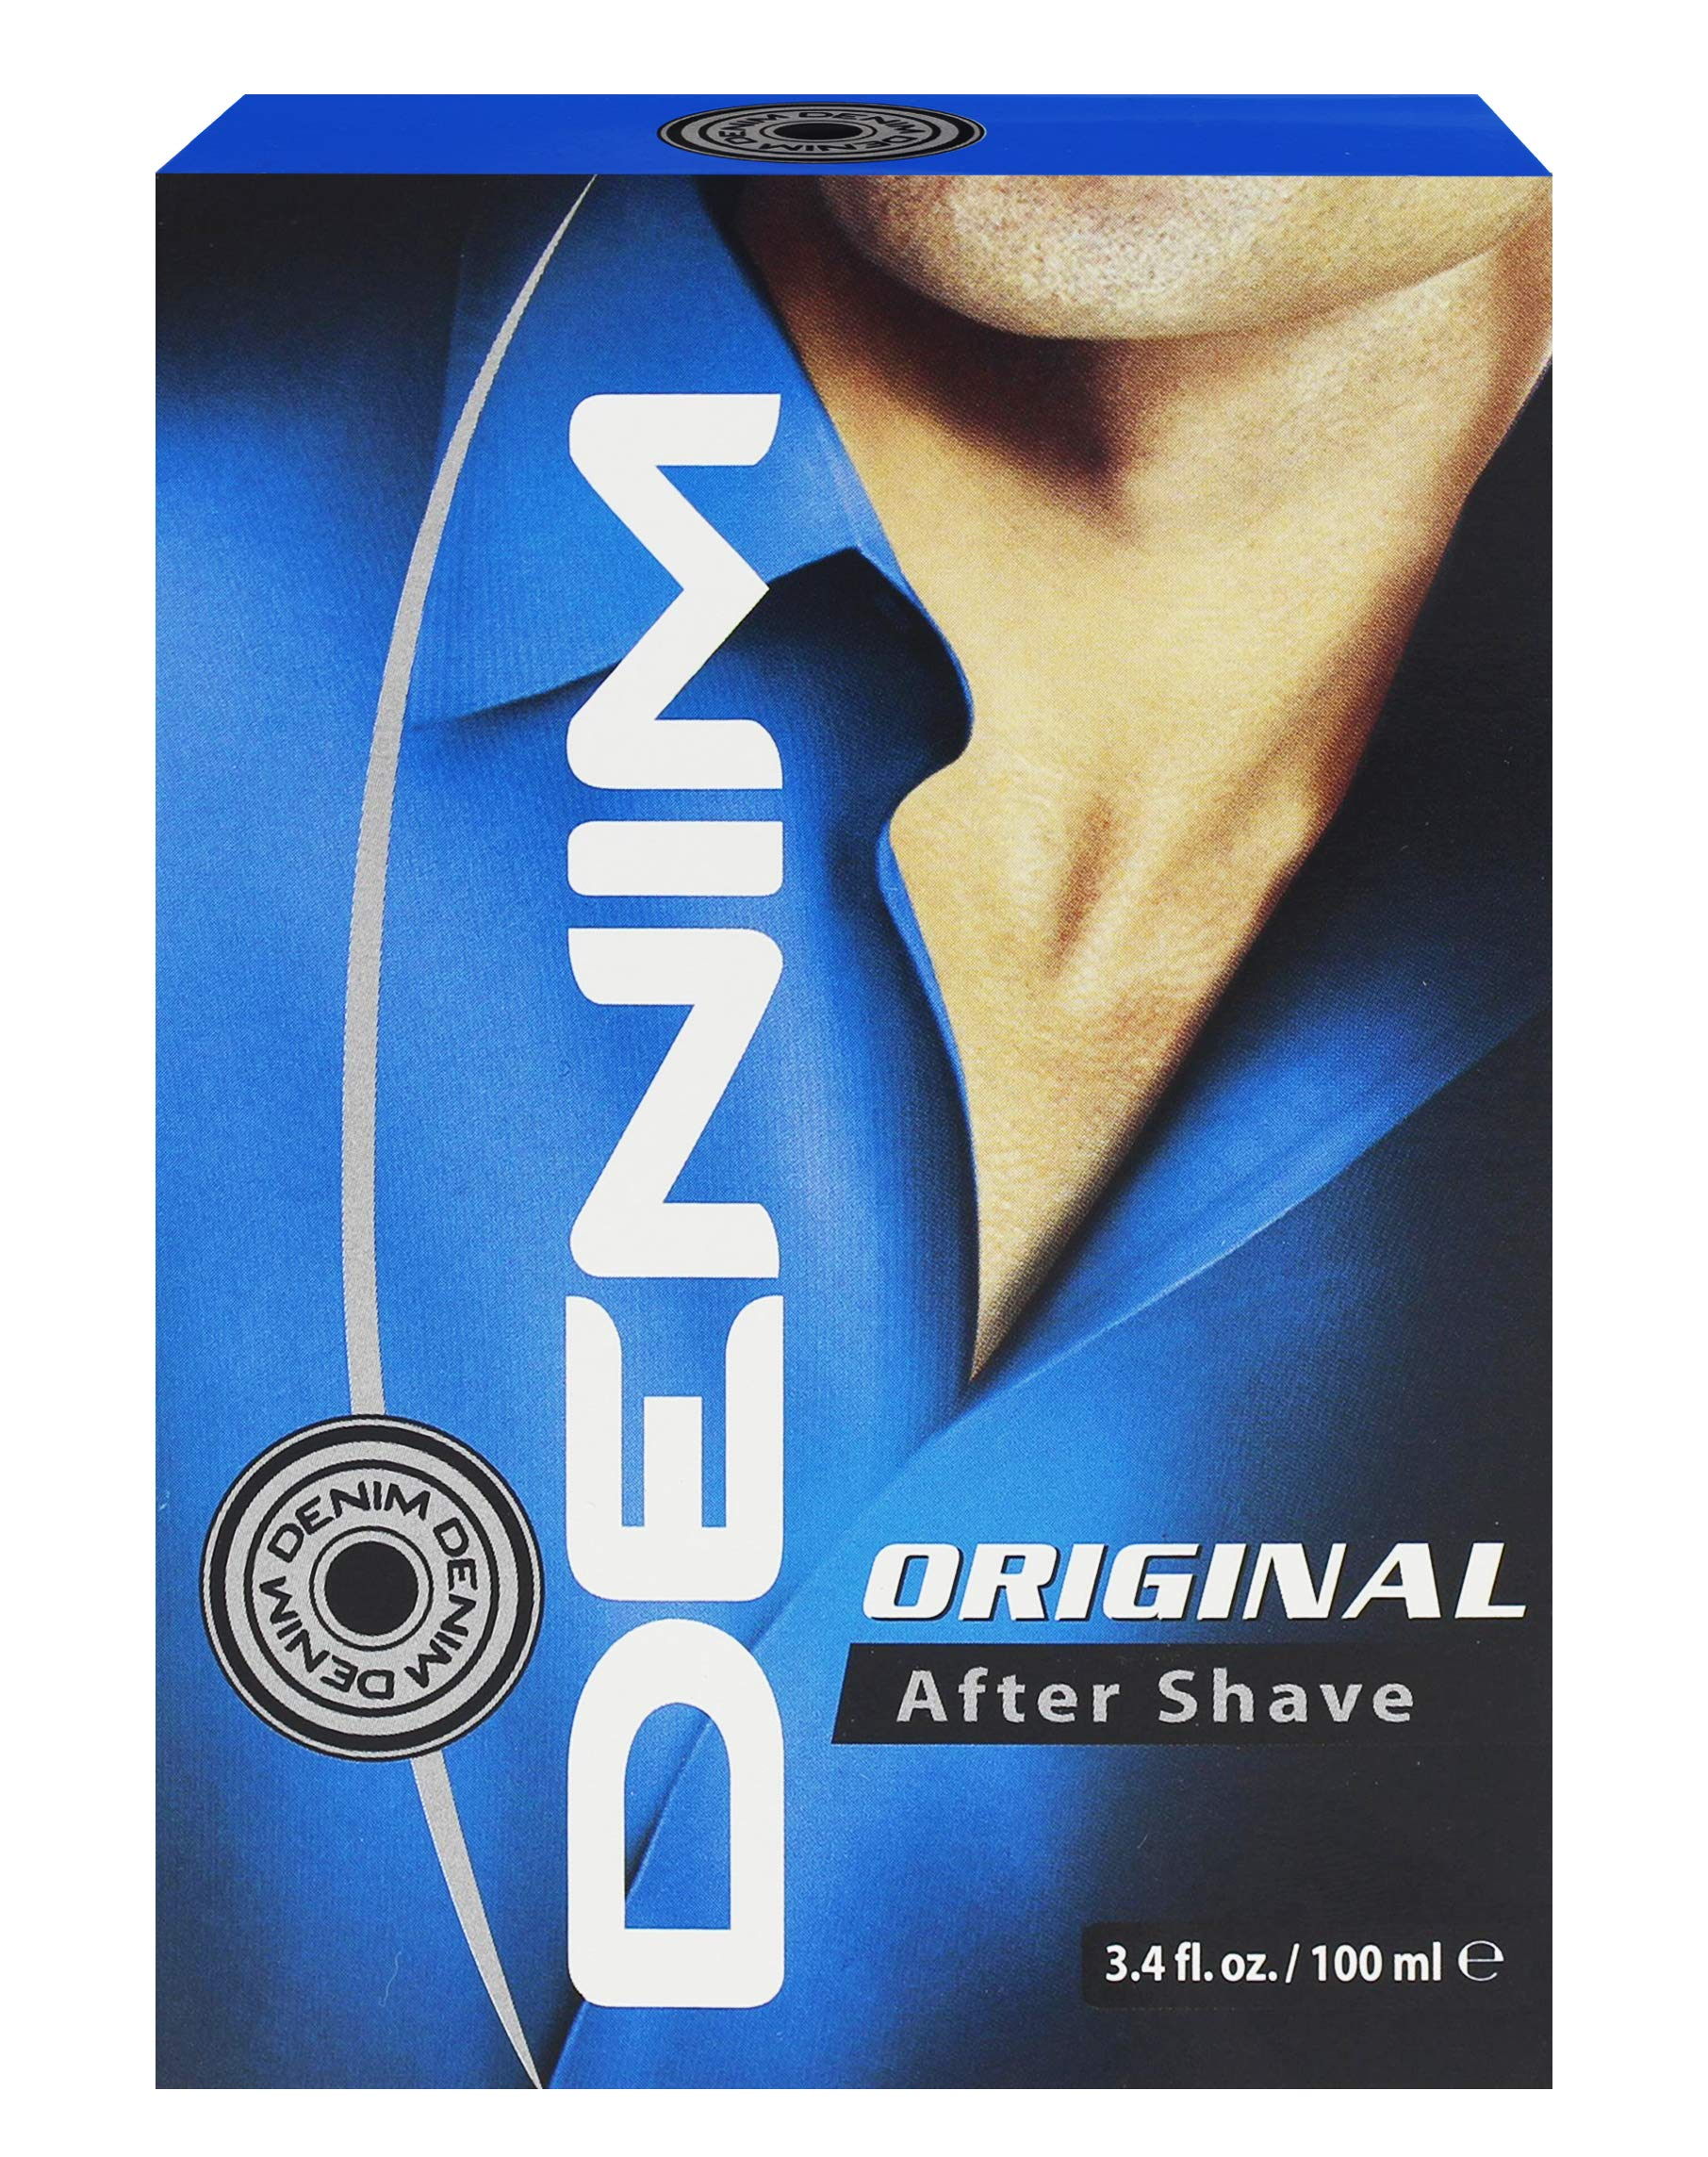 Denim AfterShave - Original X 3 PCS